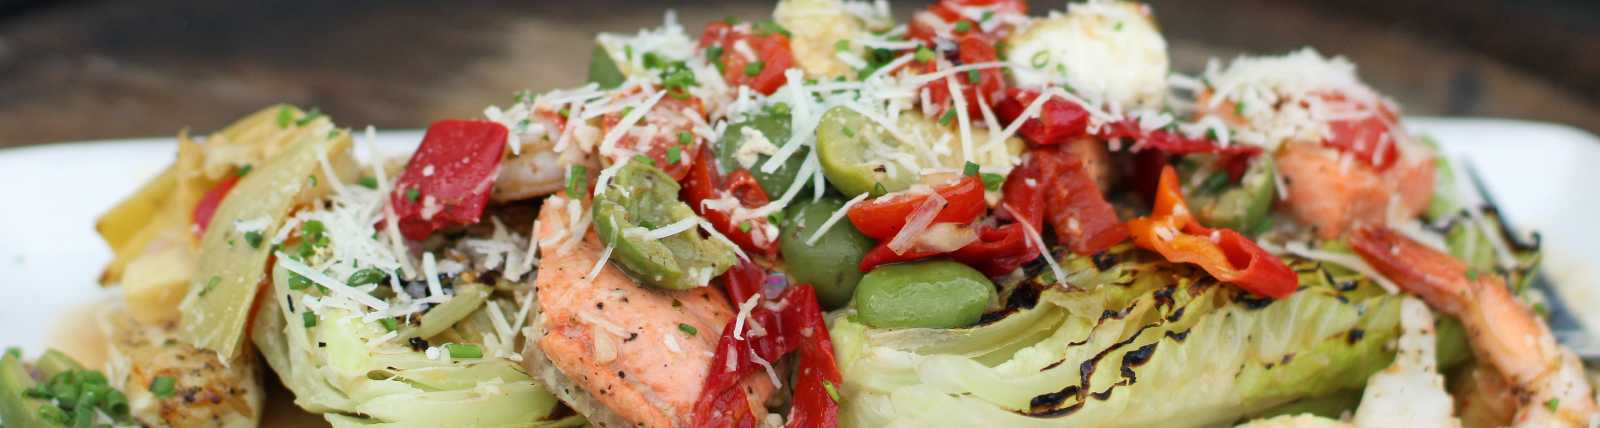 Warm Seafood Salad by Celeste Stubner